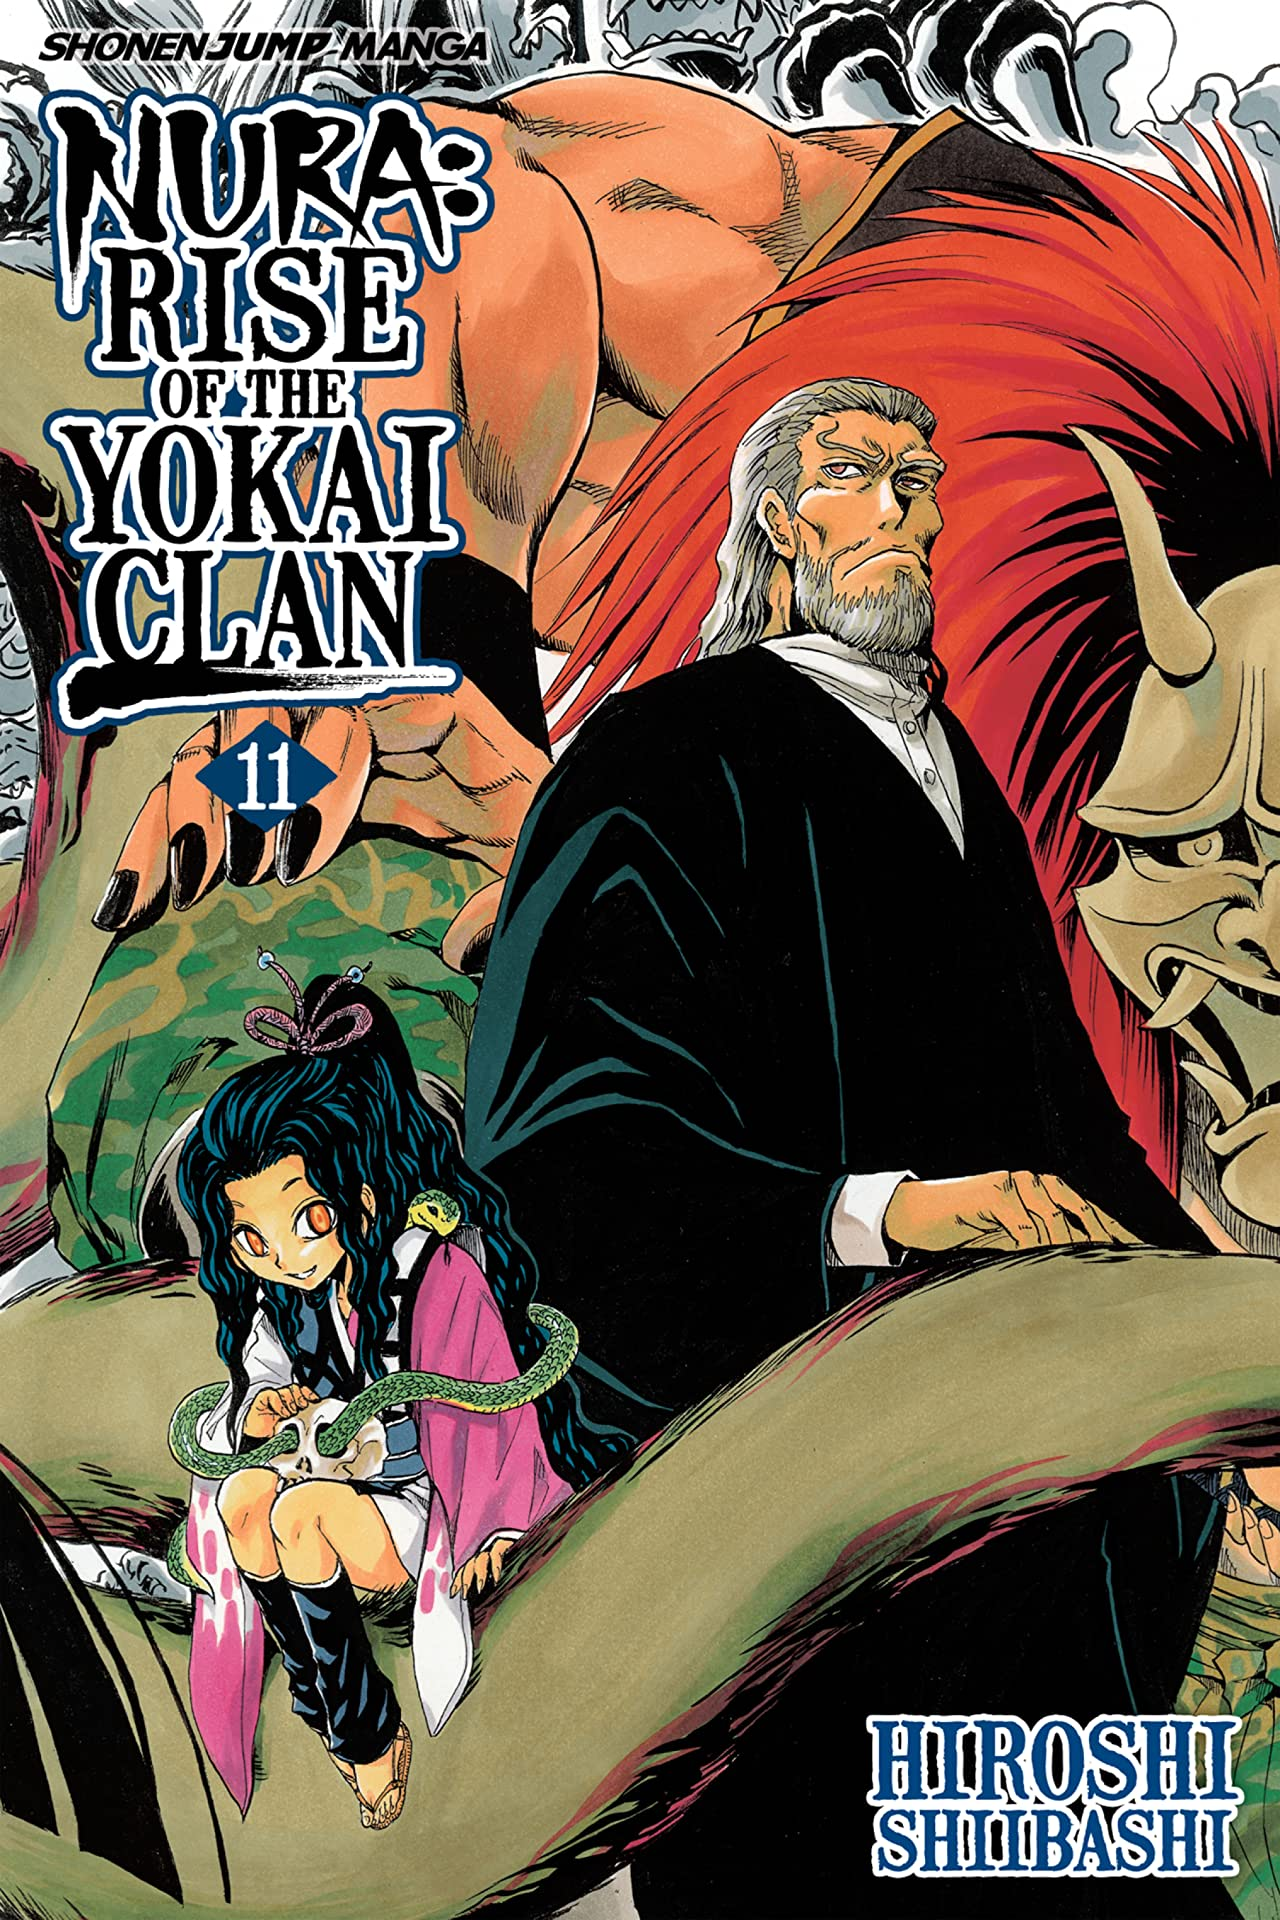 Nura: Rise of the Yokai Clan Vol. 11